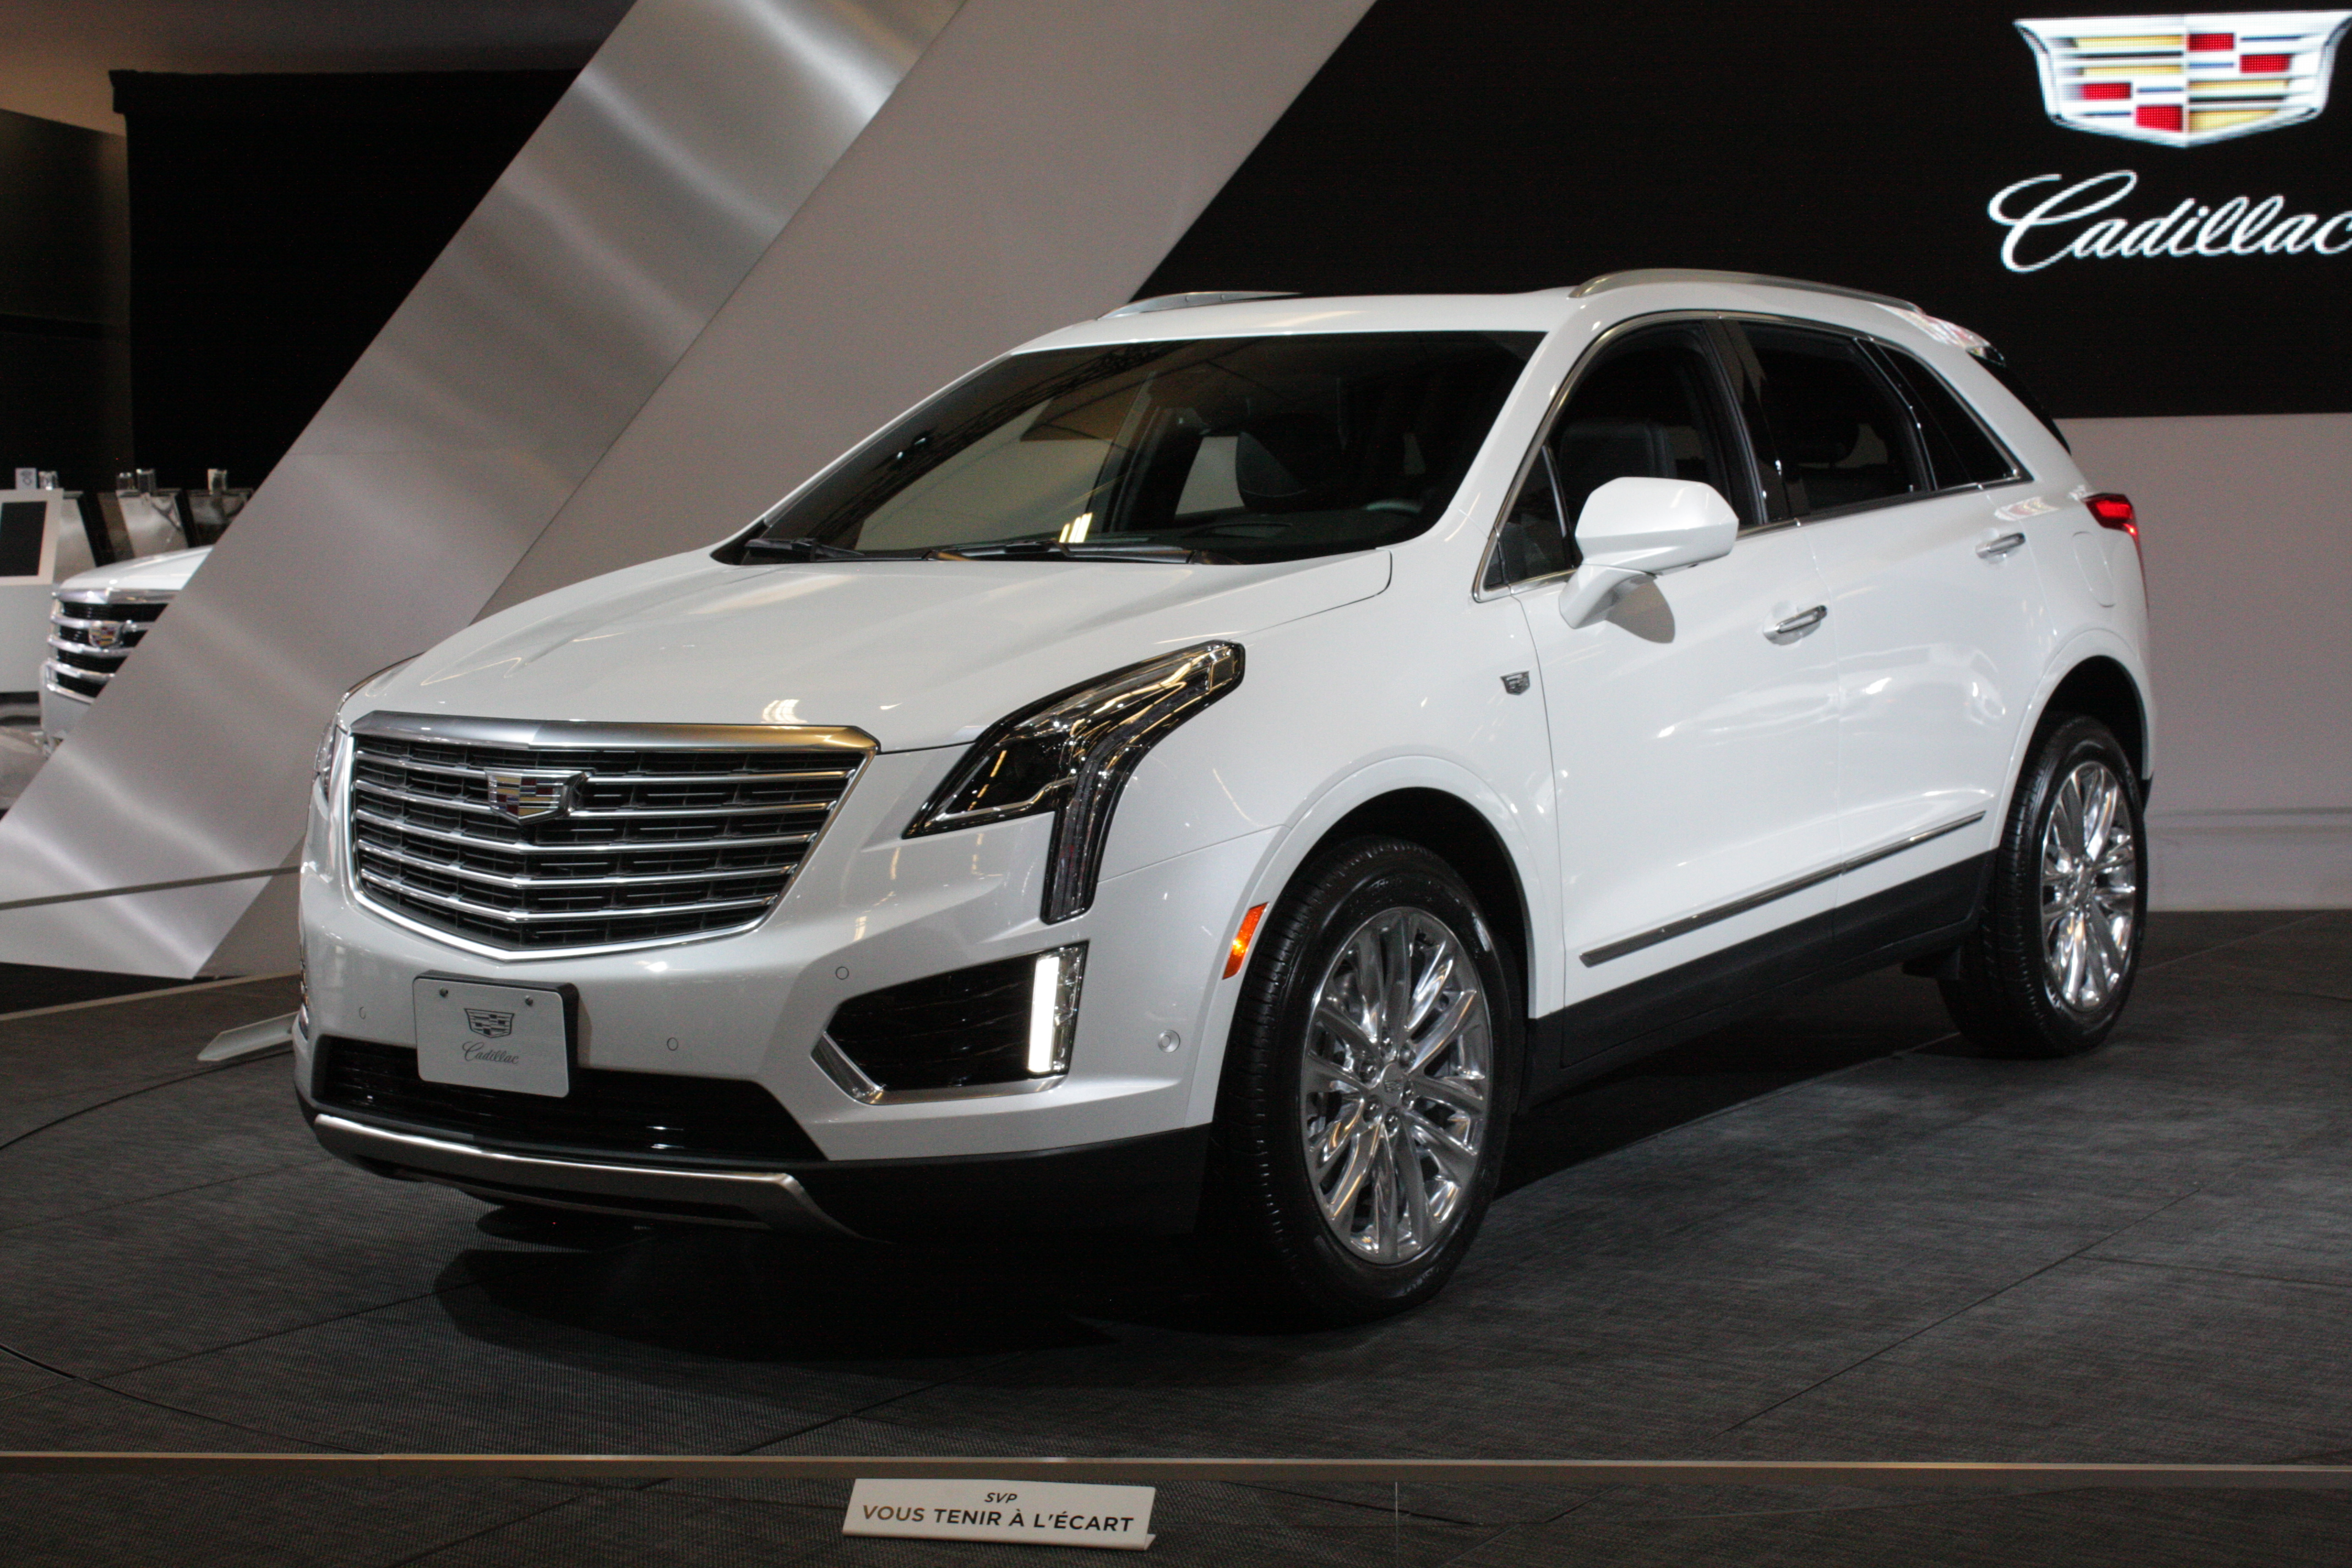 From Cadillac comes the XT5, a new mid-size crossover and replacement for the SRX that wears the brand's new styling language.